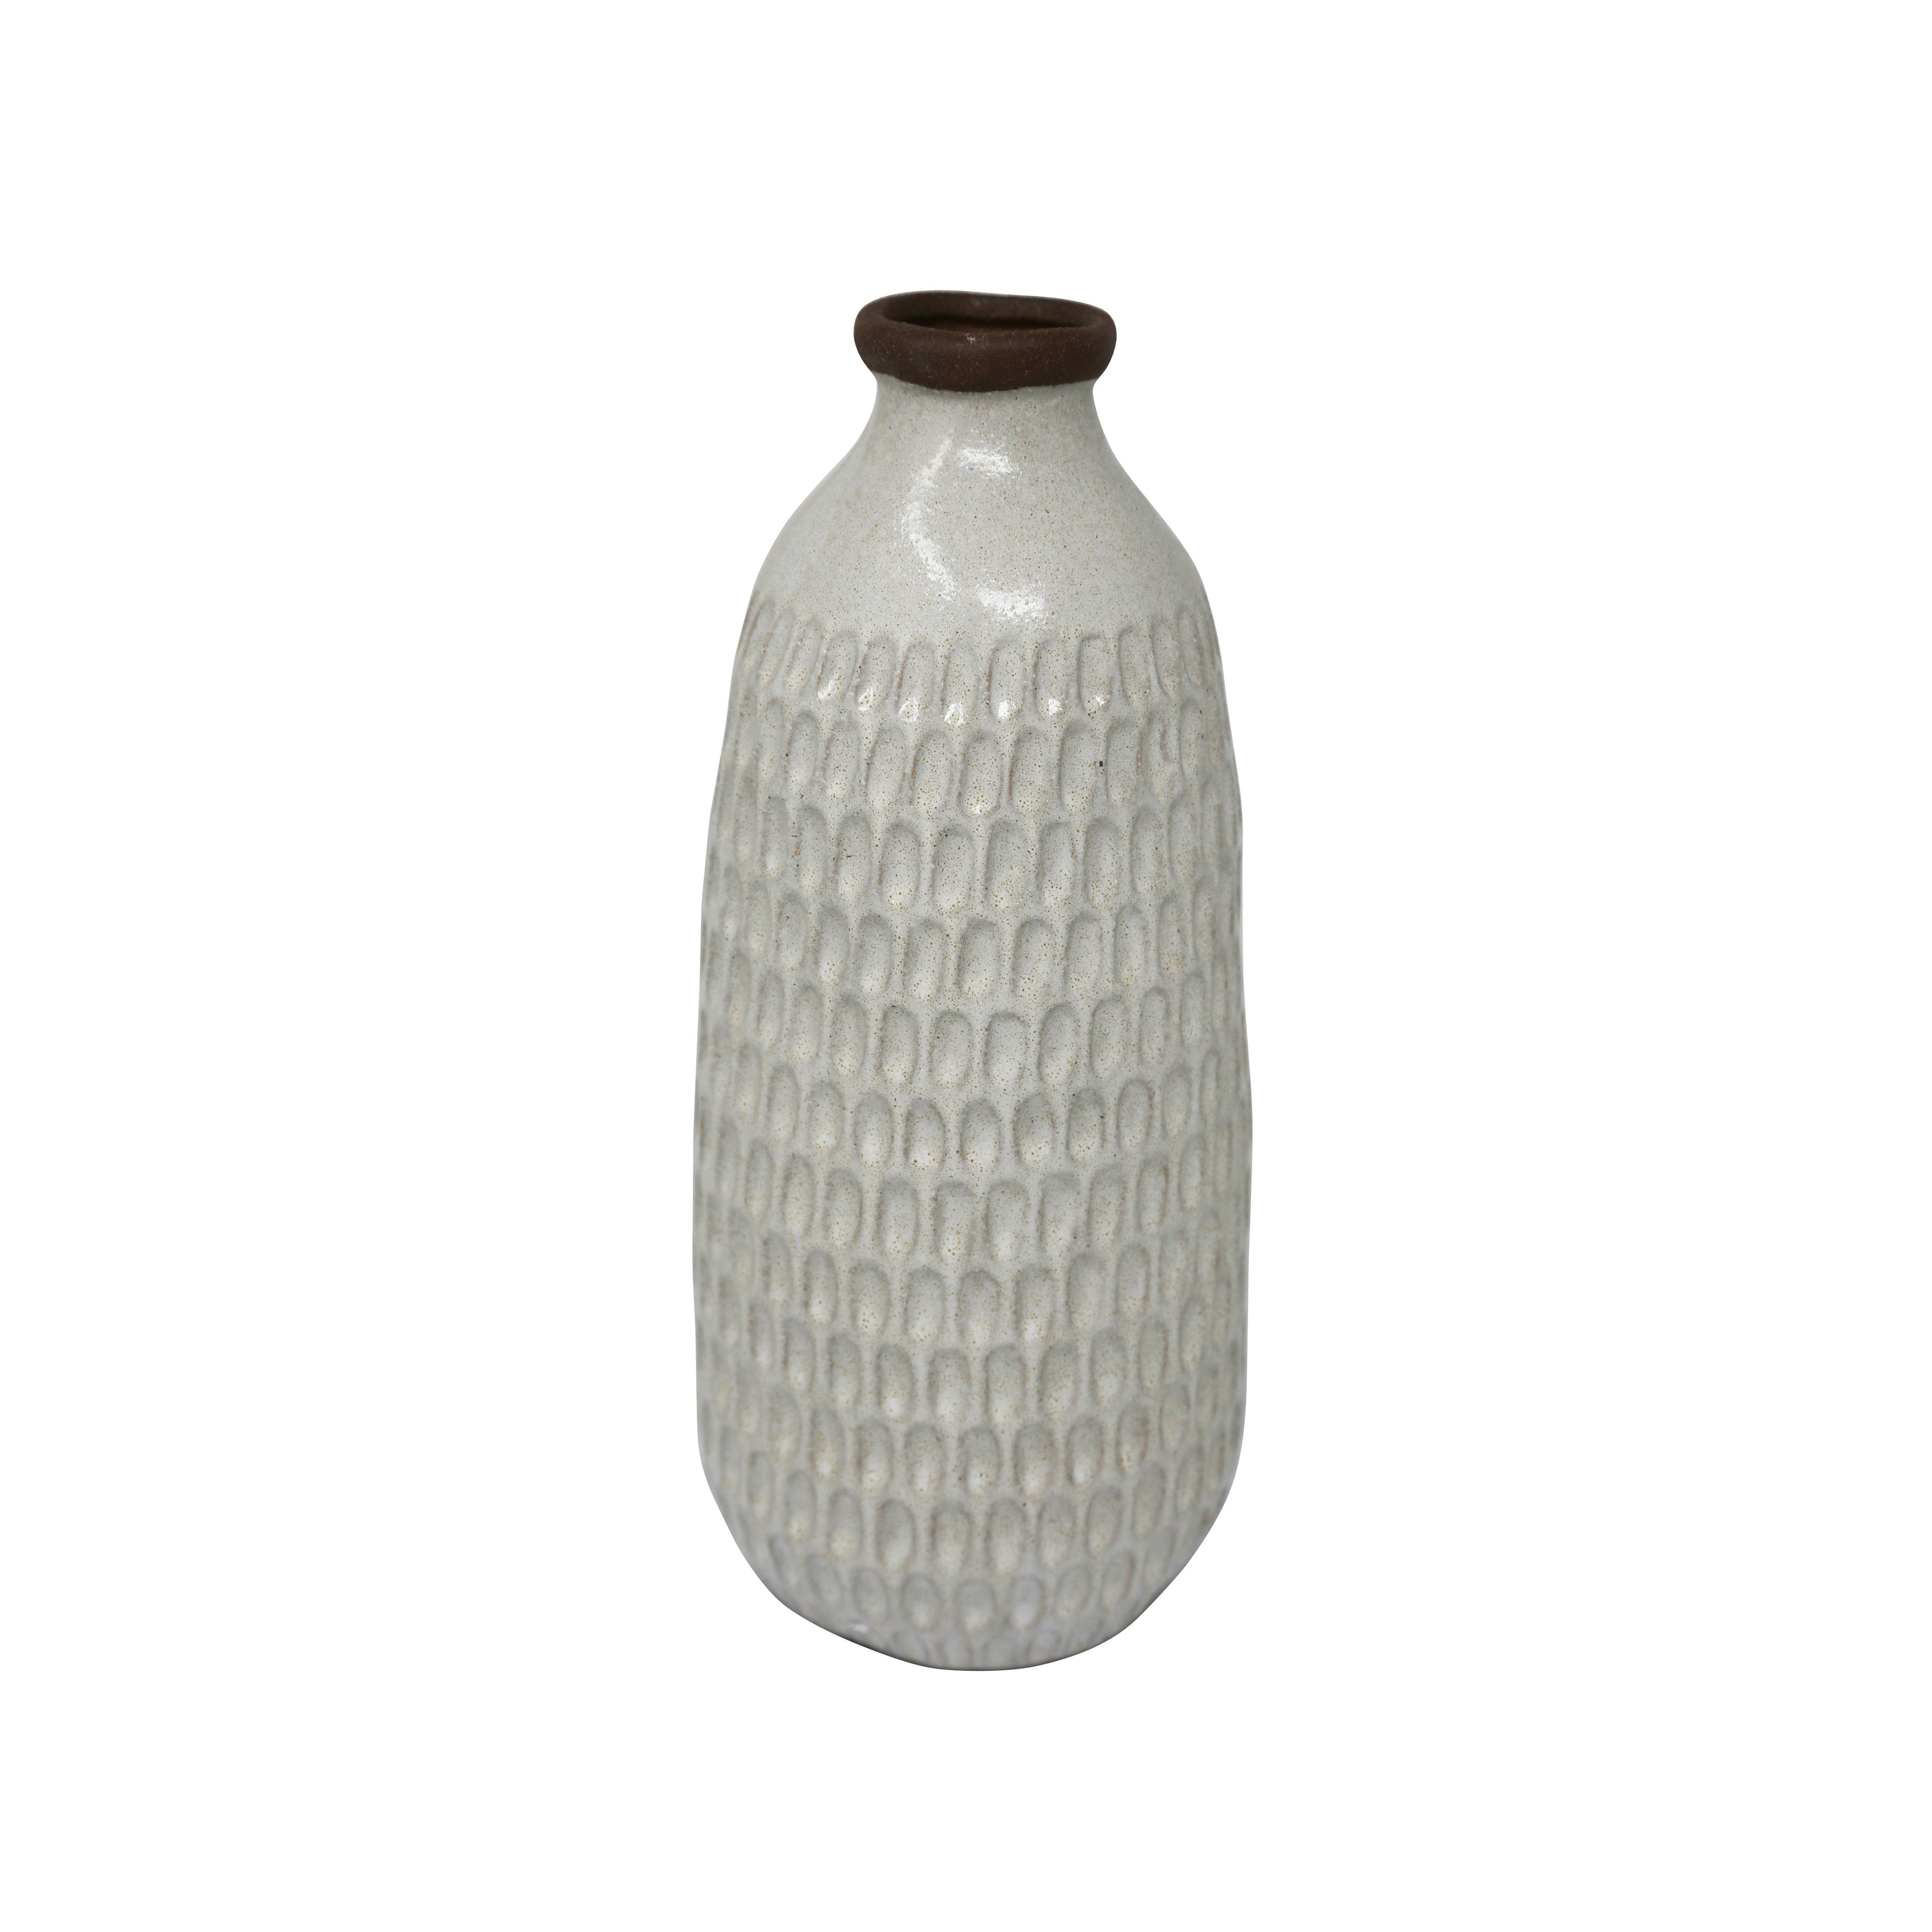 Ceramic Table Vase with Textured Surface, Medium, White and Brown